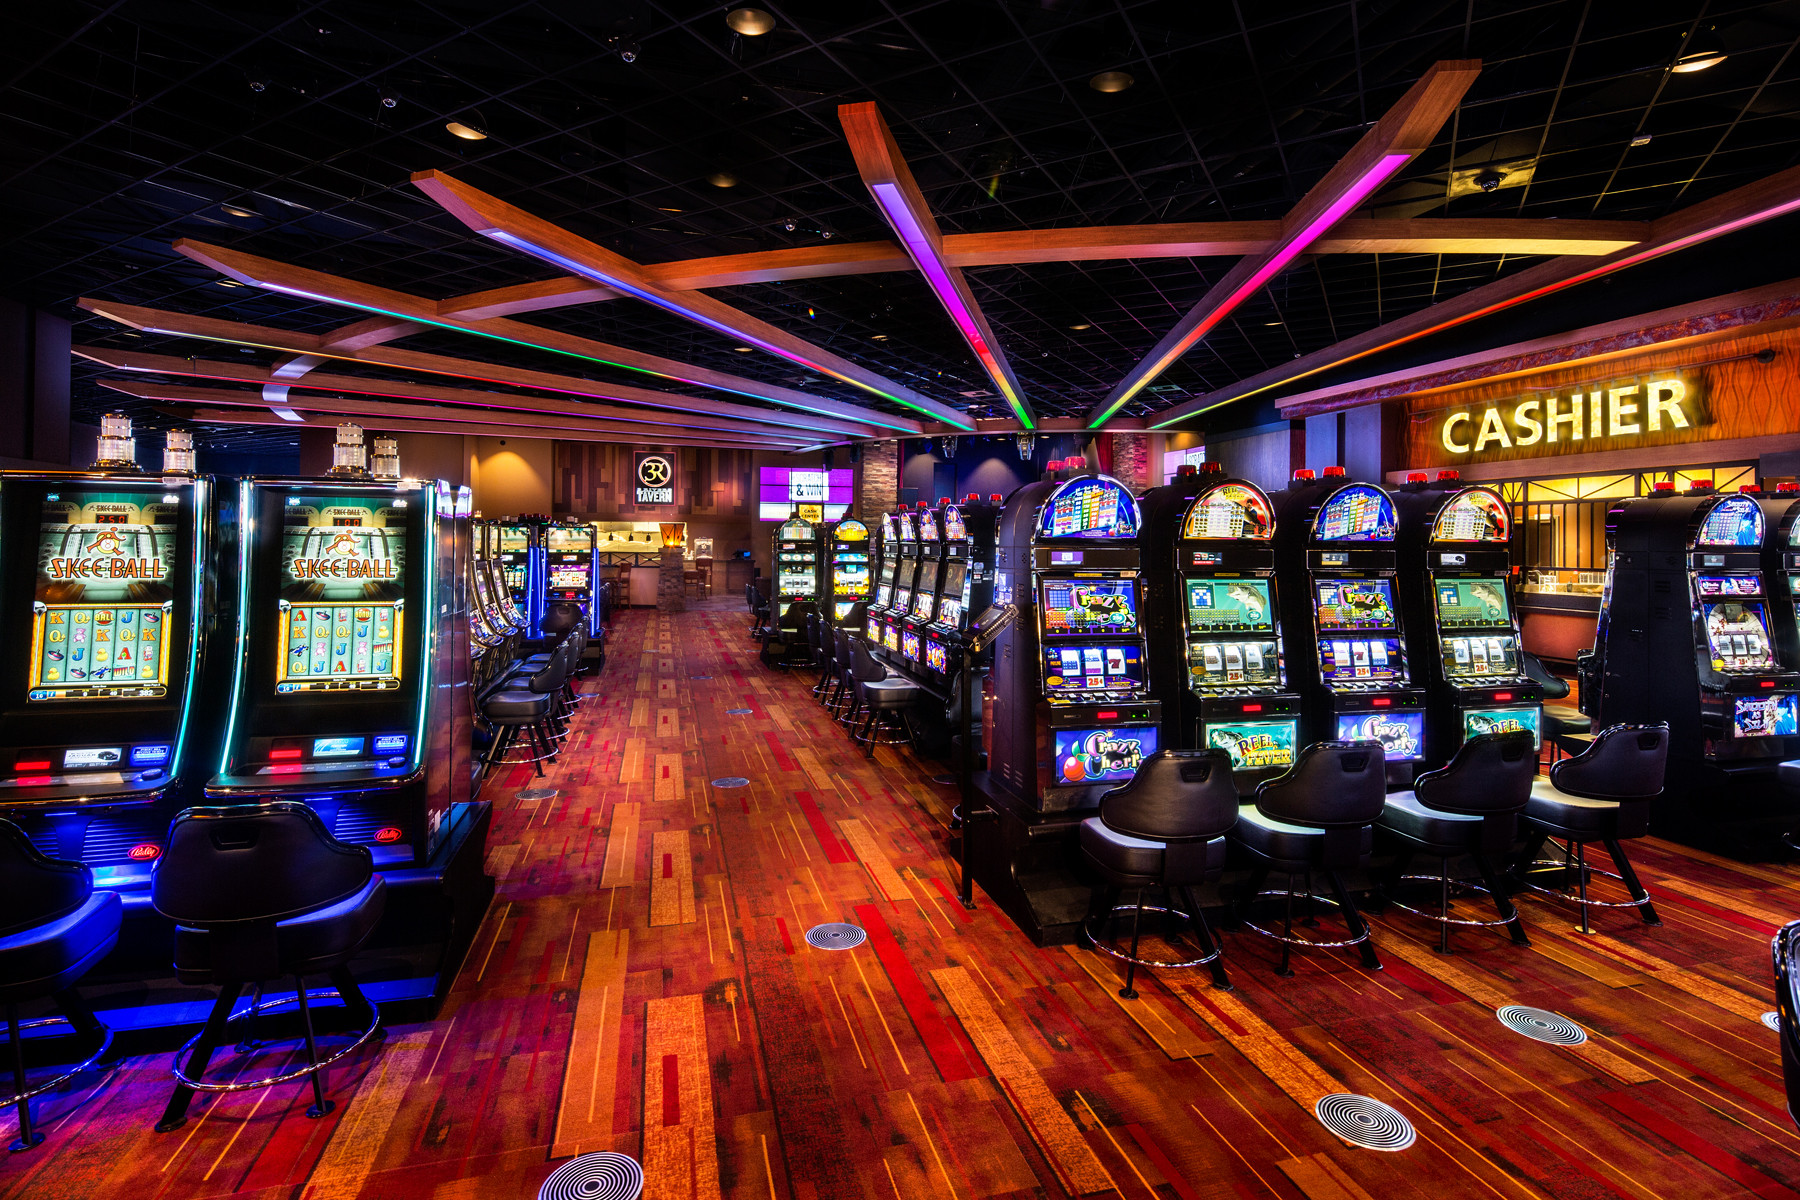 How To Enhance At Casino In 60 Minutes